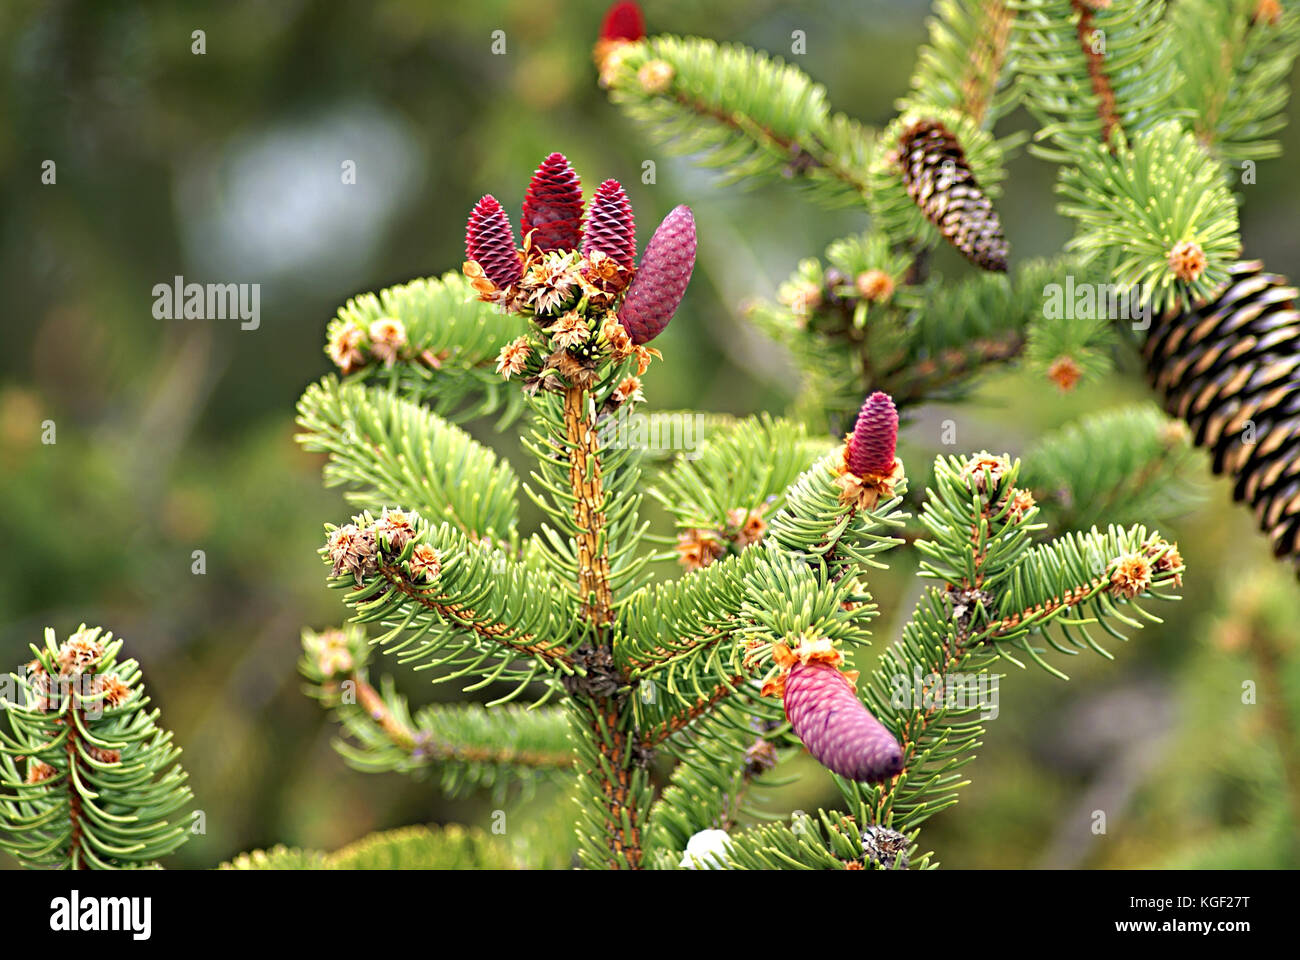 Young pink cones on a Norway Spruce (Picea abies) branch, often used as Christmas tree. Autumn season in a southern - Stock Image